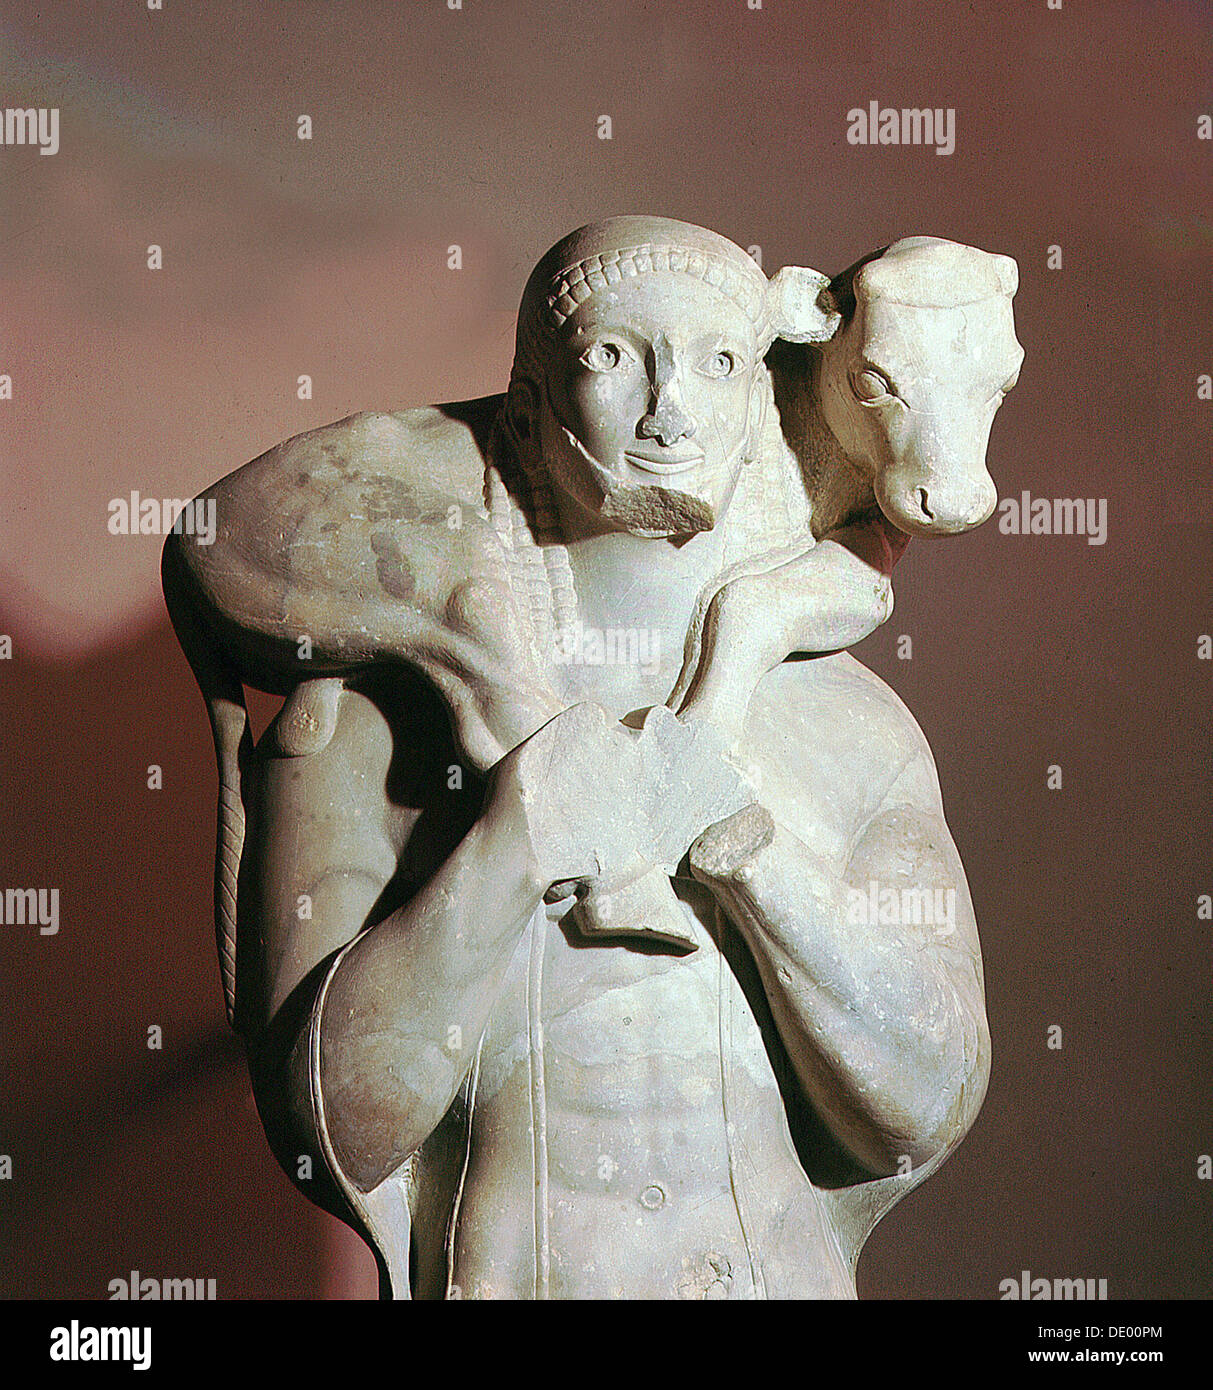 The Calf-bearer (Moschophoros), Ancient Greek, from Athens, Archaic period, c570 BC. Artist: Werner Forman - Stock Image